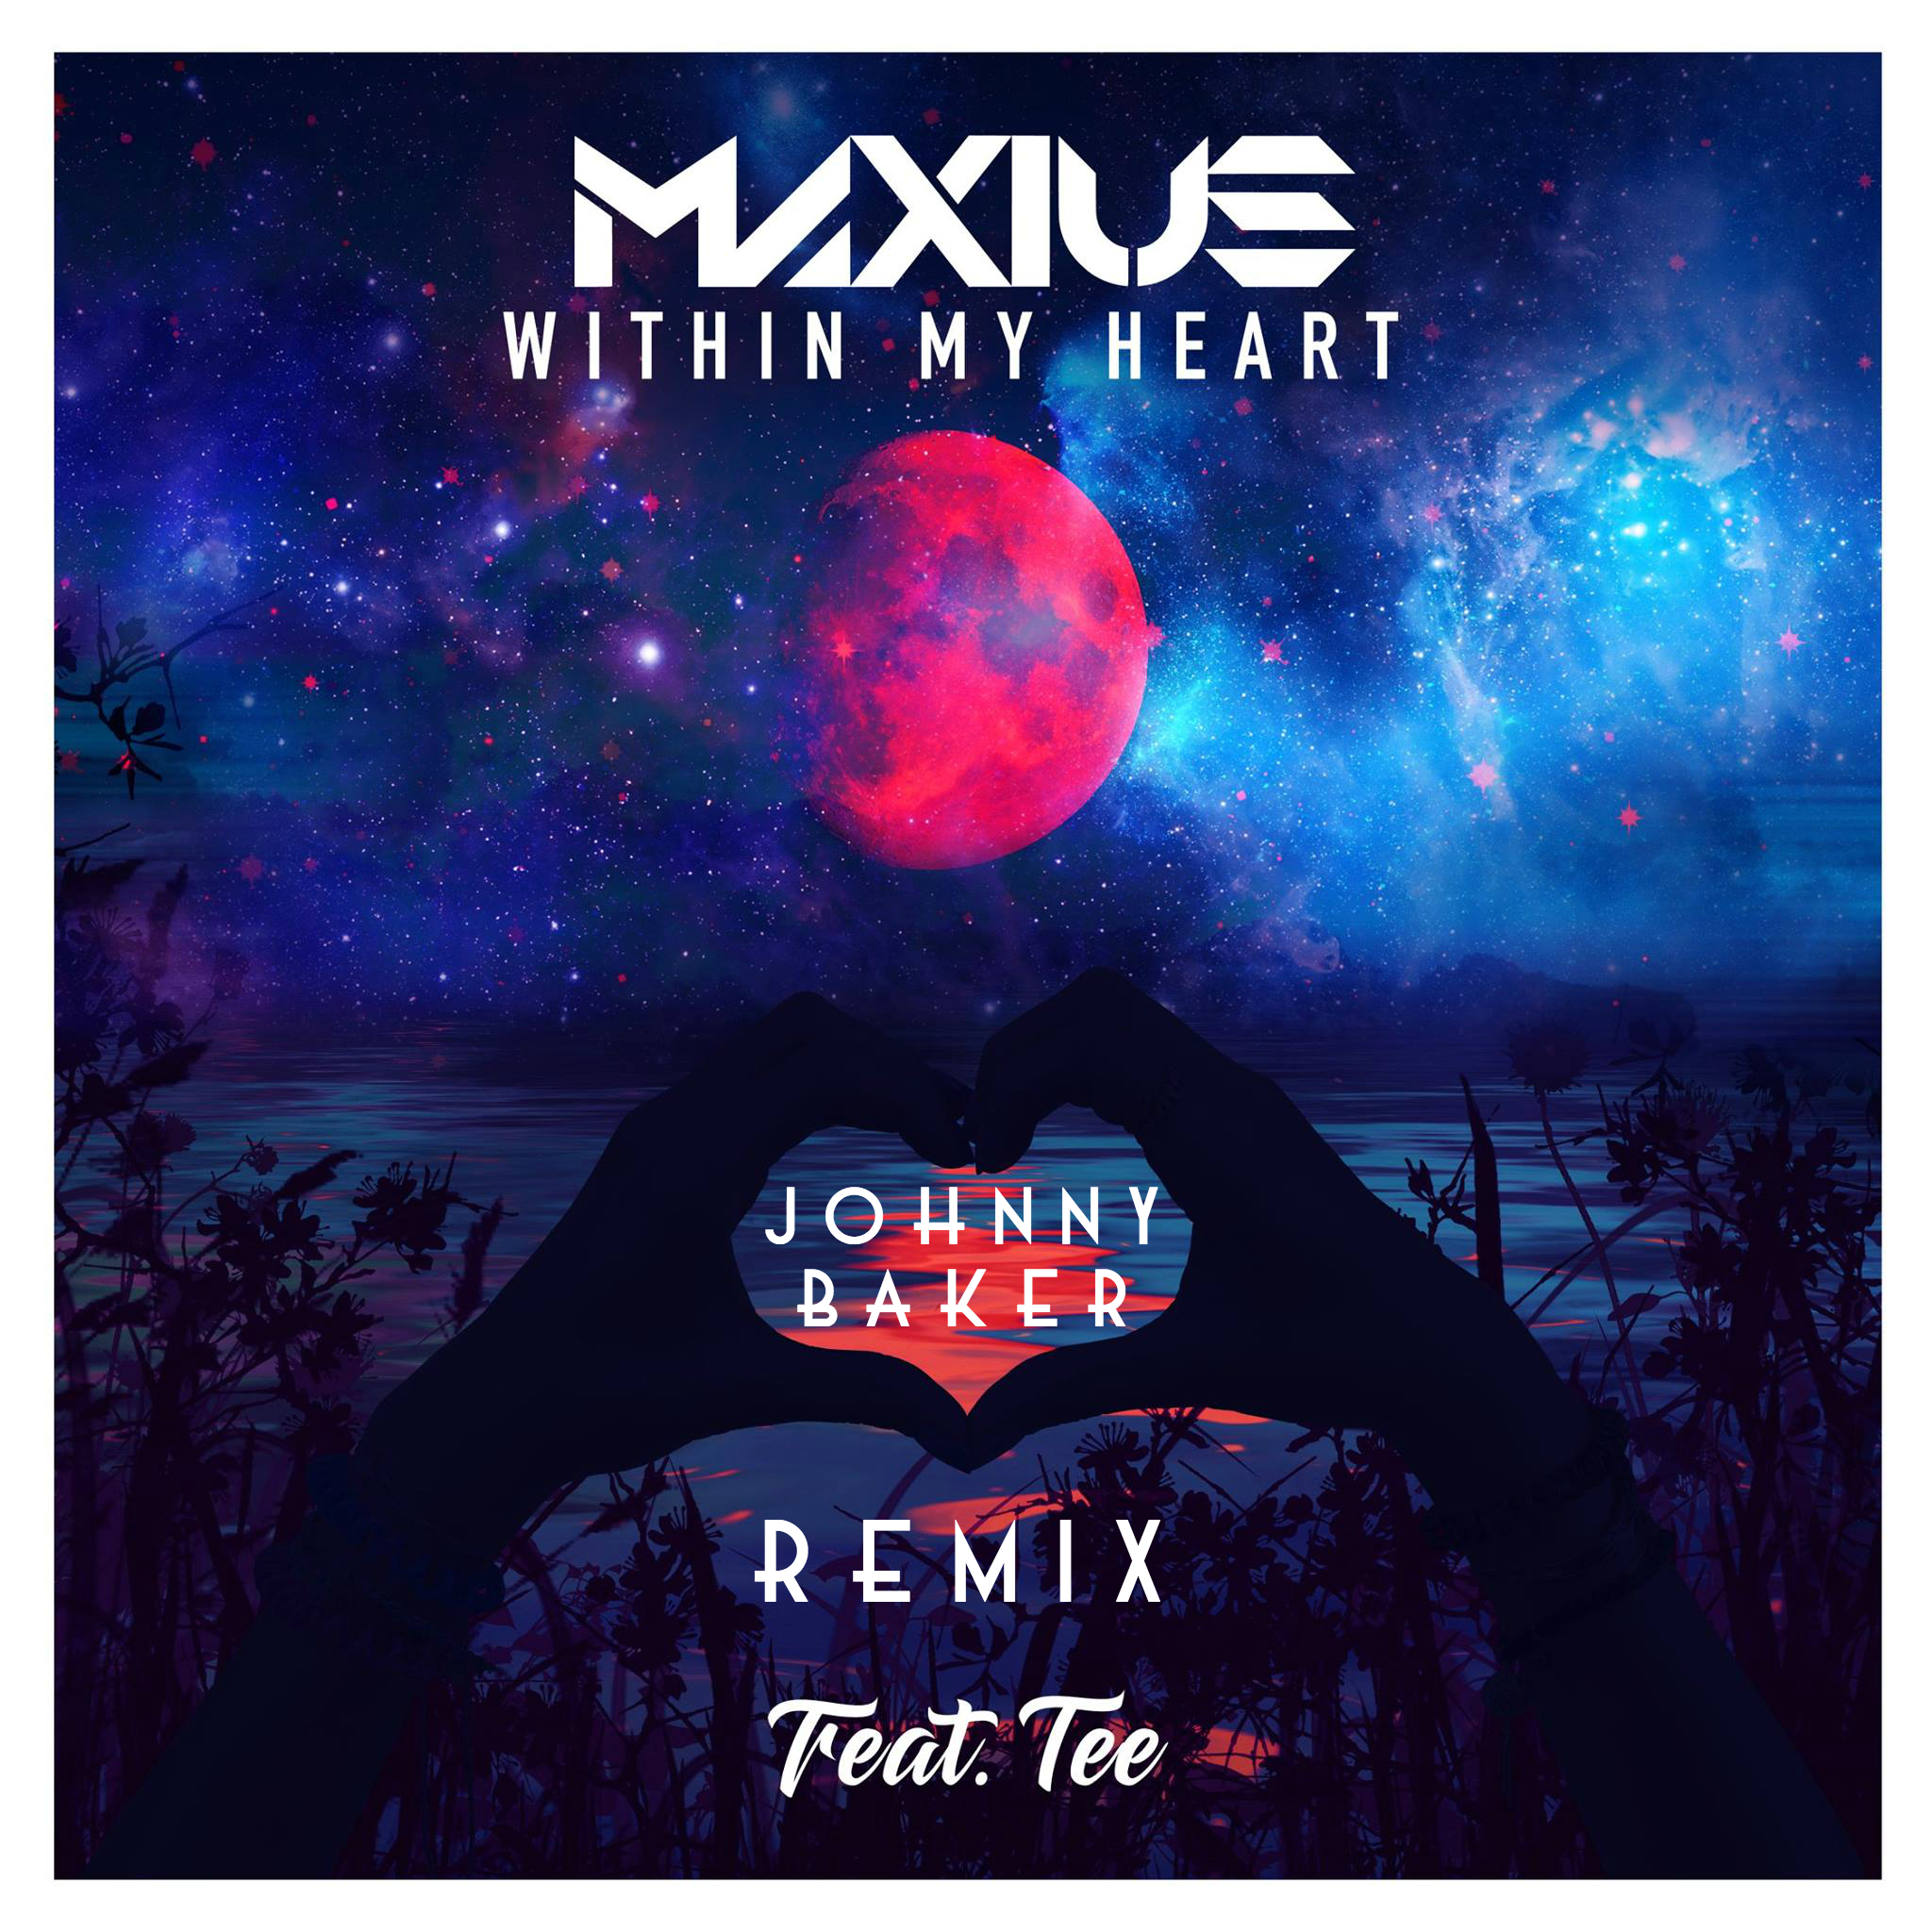 WITHIN MY HEART JOHNNY BAKER REMIX